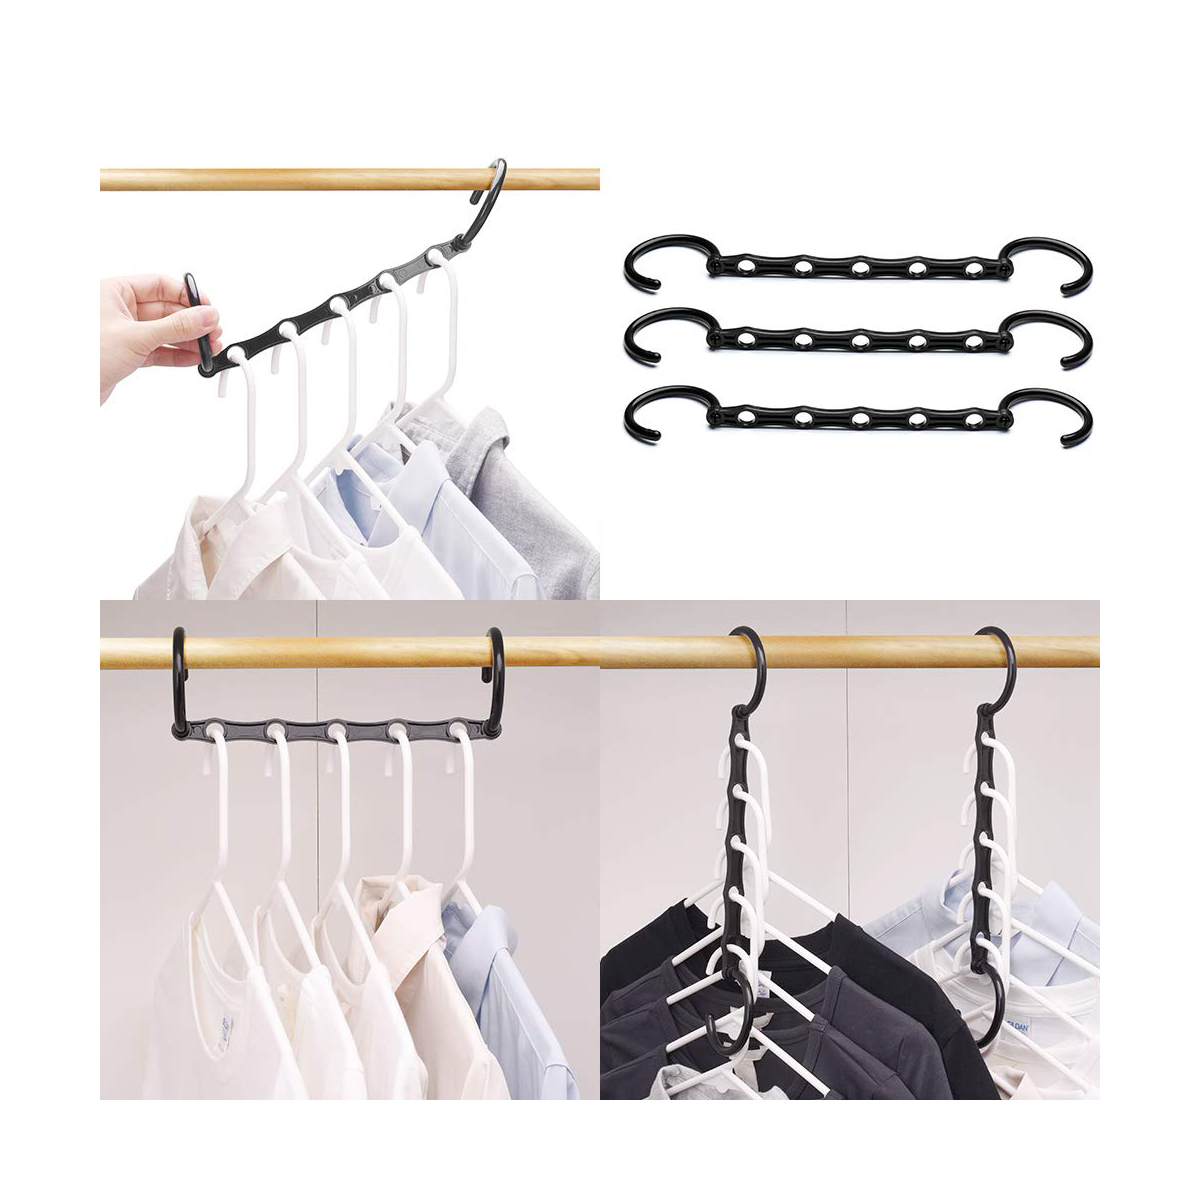 House Day Cascading Hangers